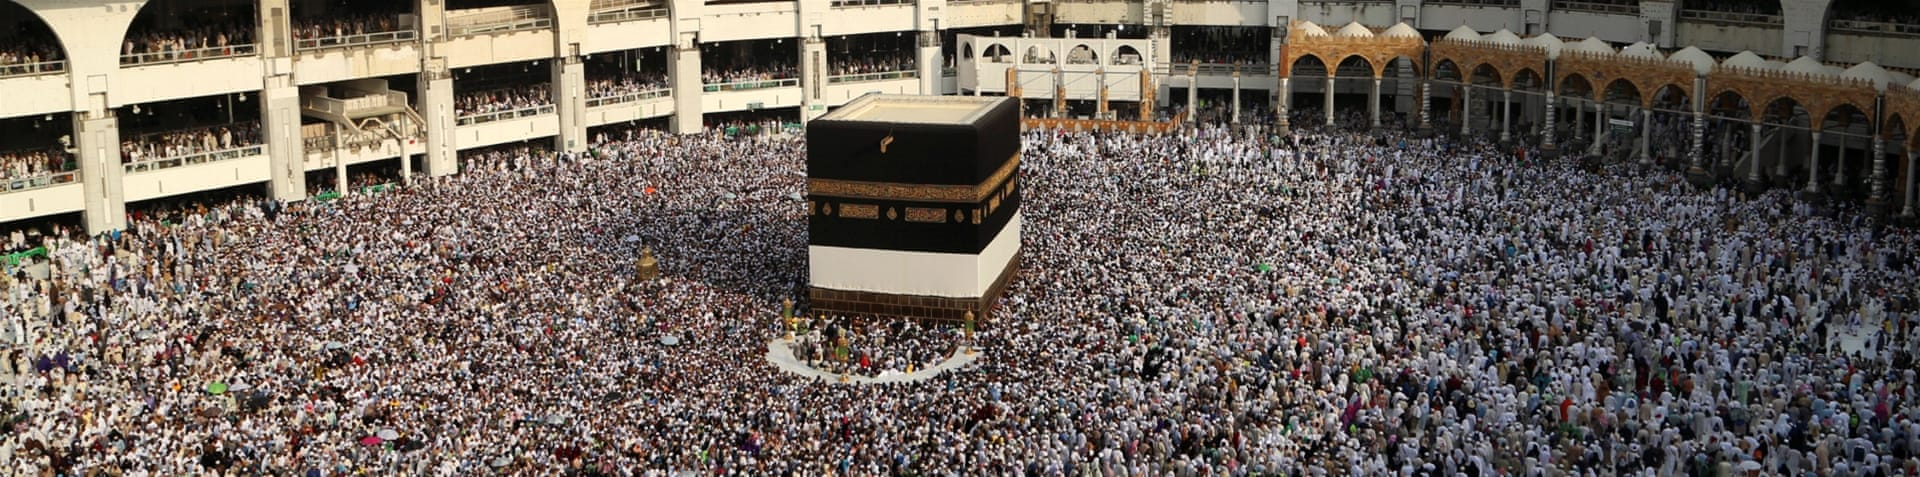 Pilgrims circle the Kaaba at the Grand Mosque in Mecca on September 9 [Reuters]